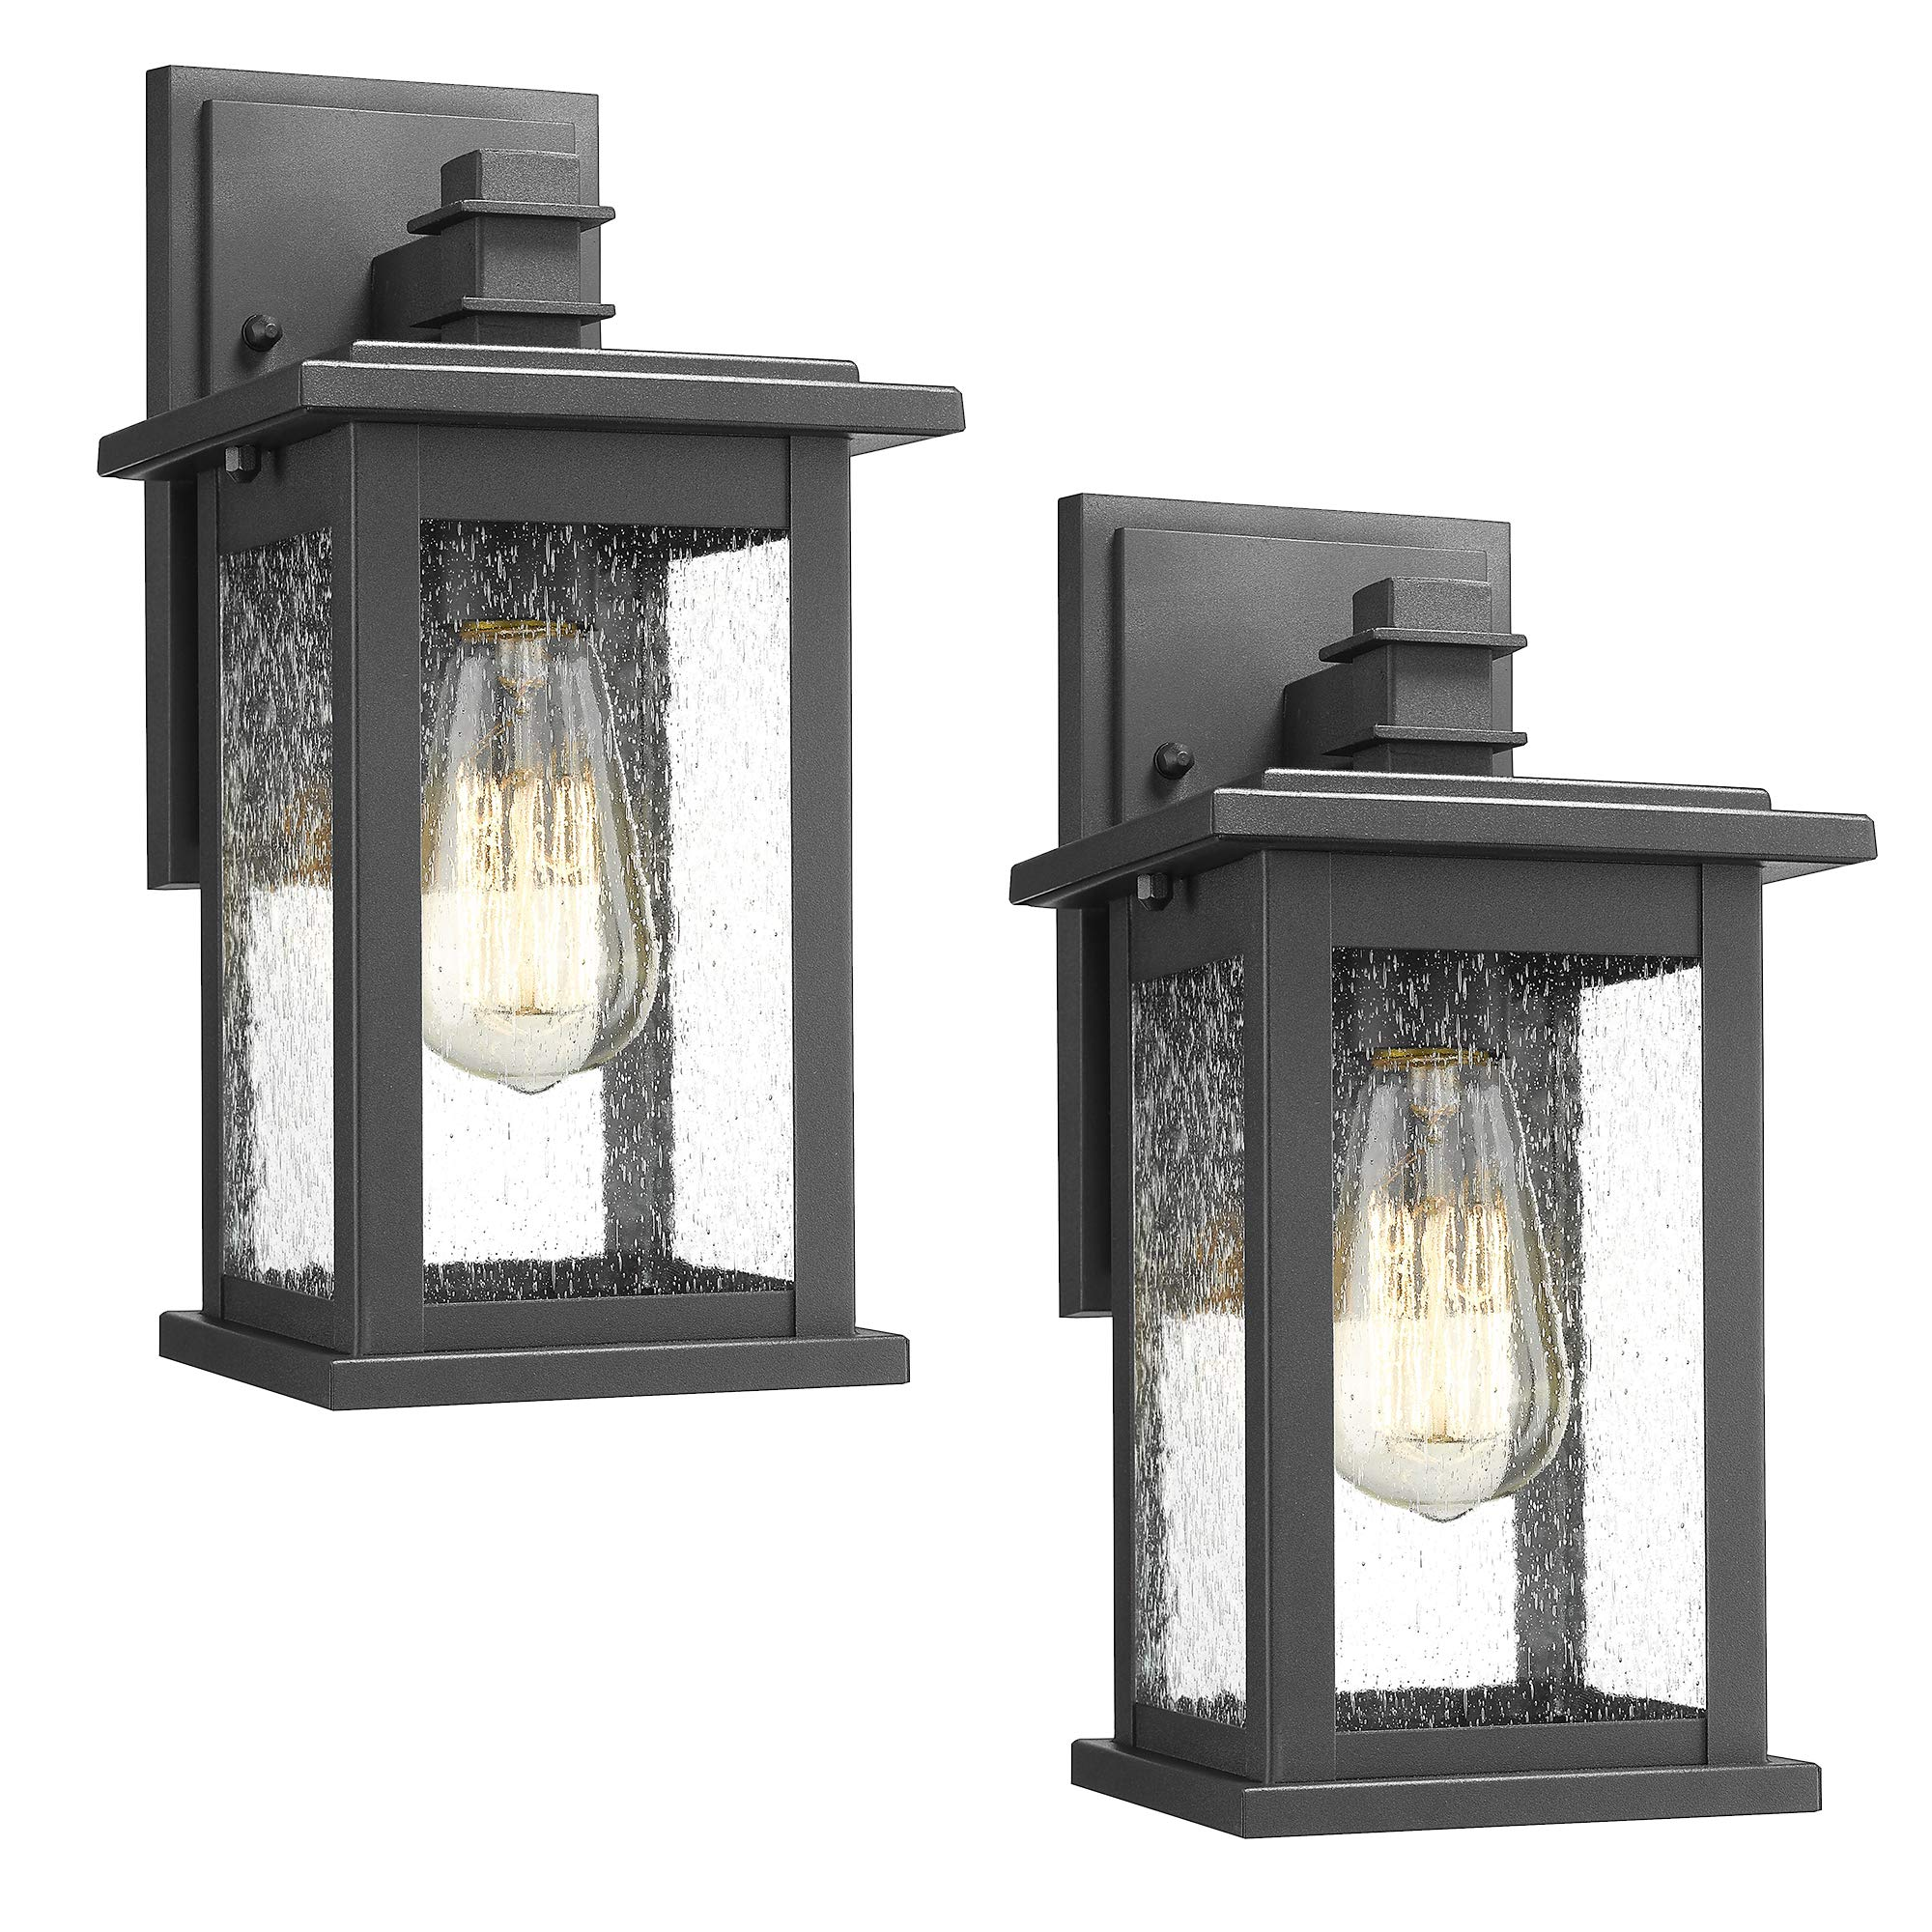 Emliviar Outdoor Wall Mount Lights 2 Pack, 1-Light Exterior Sconces Lantern in Black Finish with Clear Seeded Glass, OS-1803EW1-2PK by EMLIVIAR (Image #1)